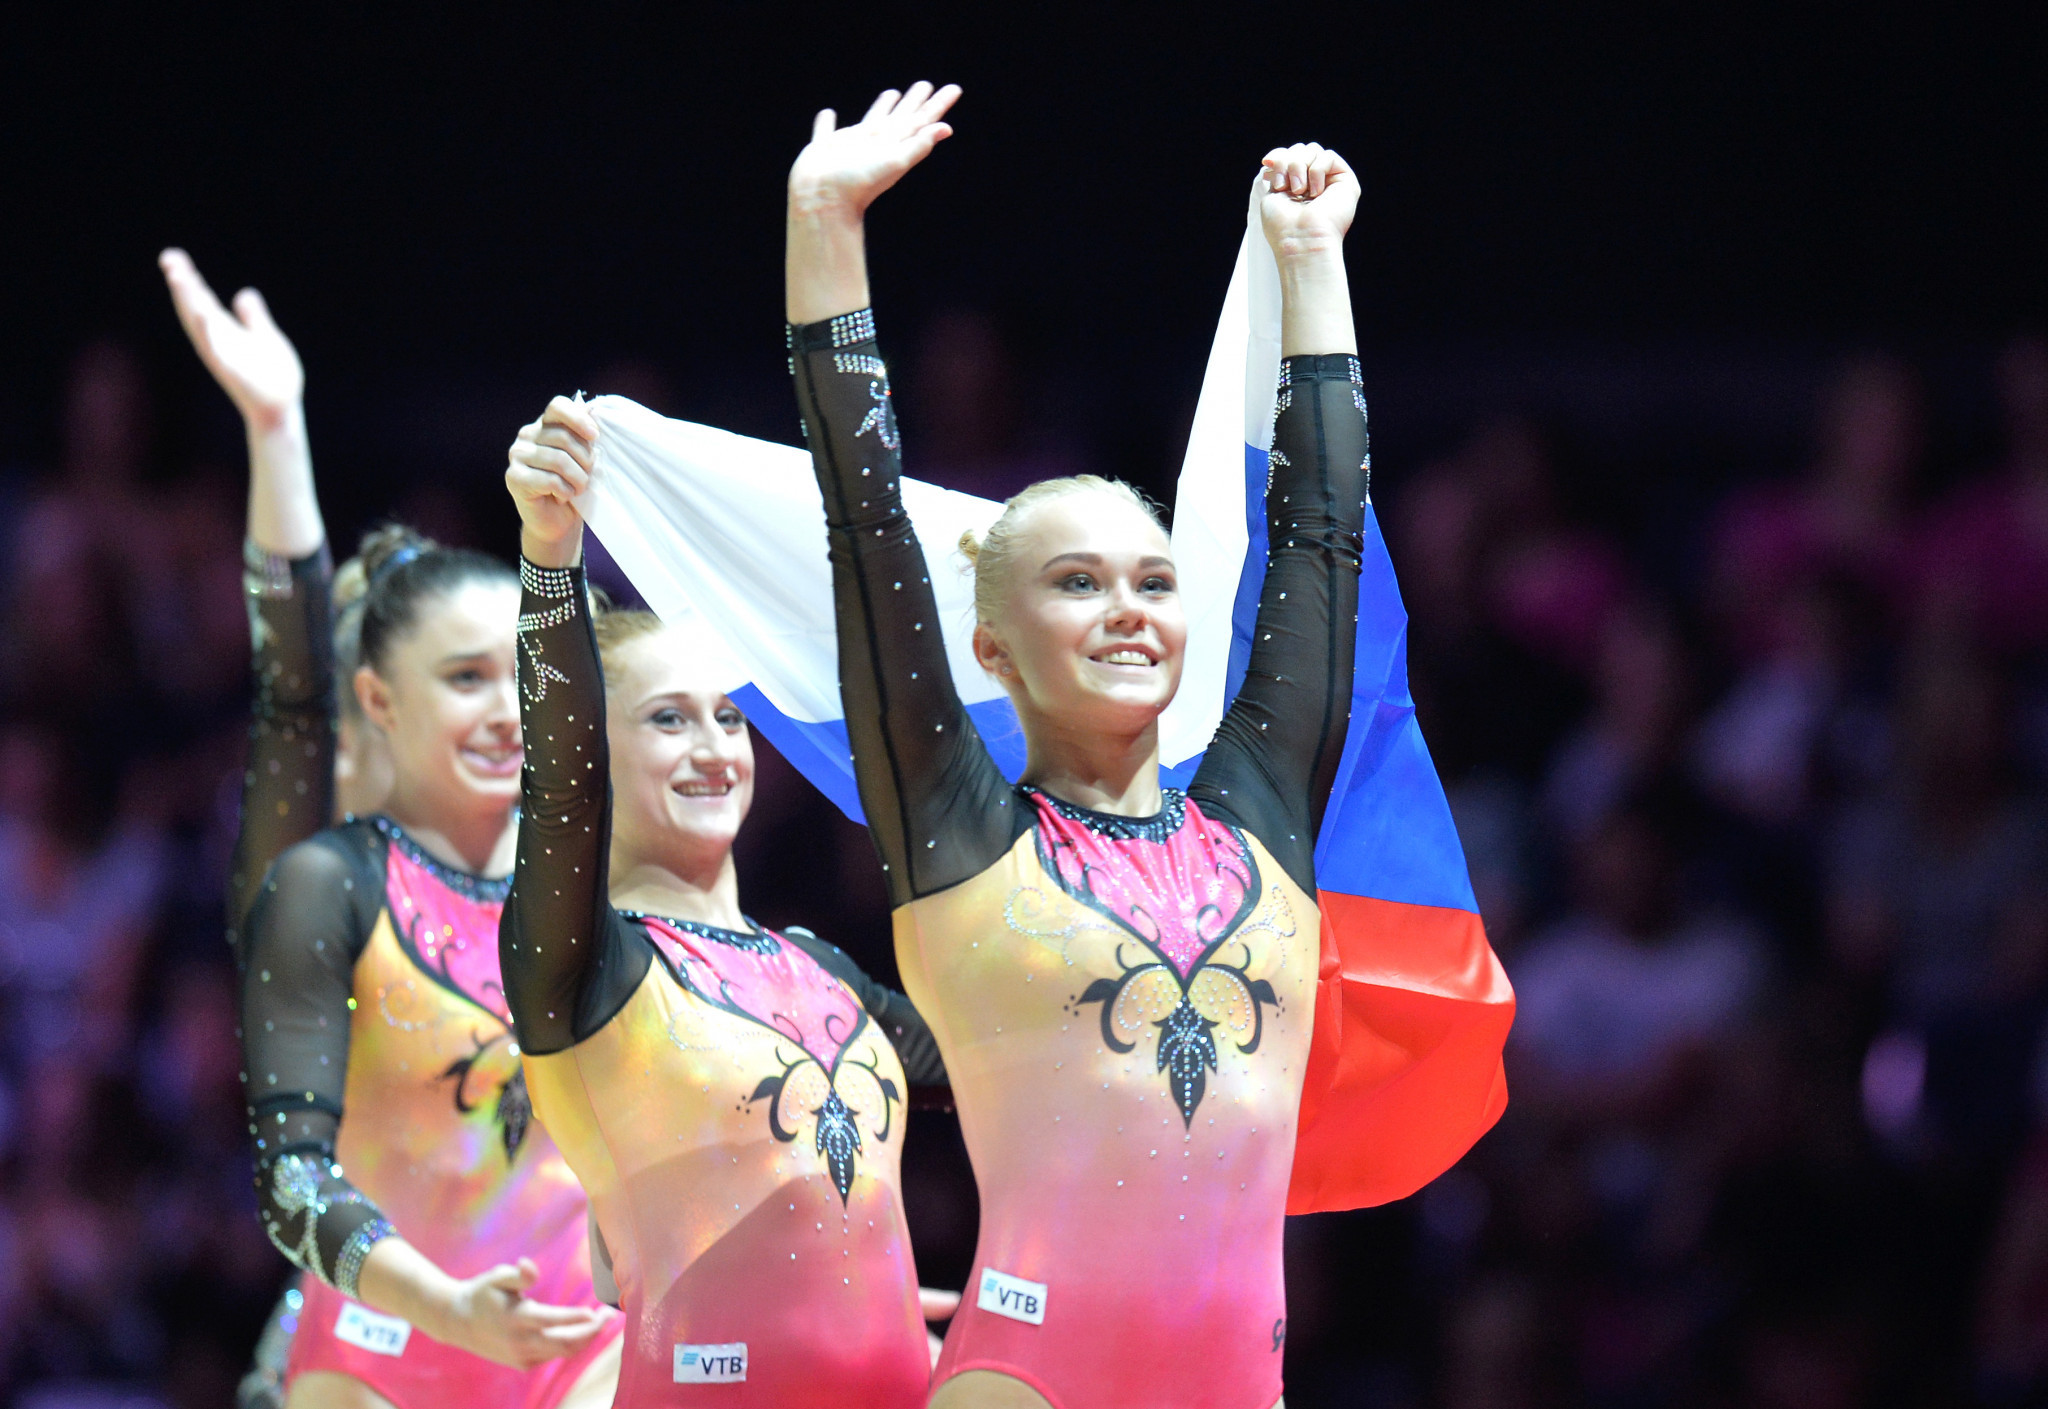 Russia retain women's artistic gymnastics team title at Glasgow 2018 European Championships